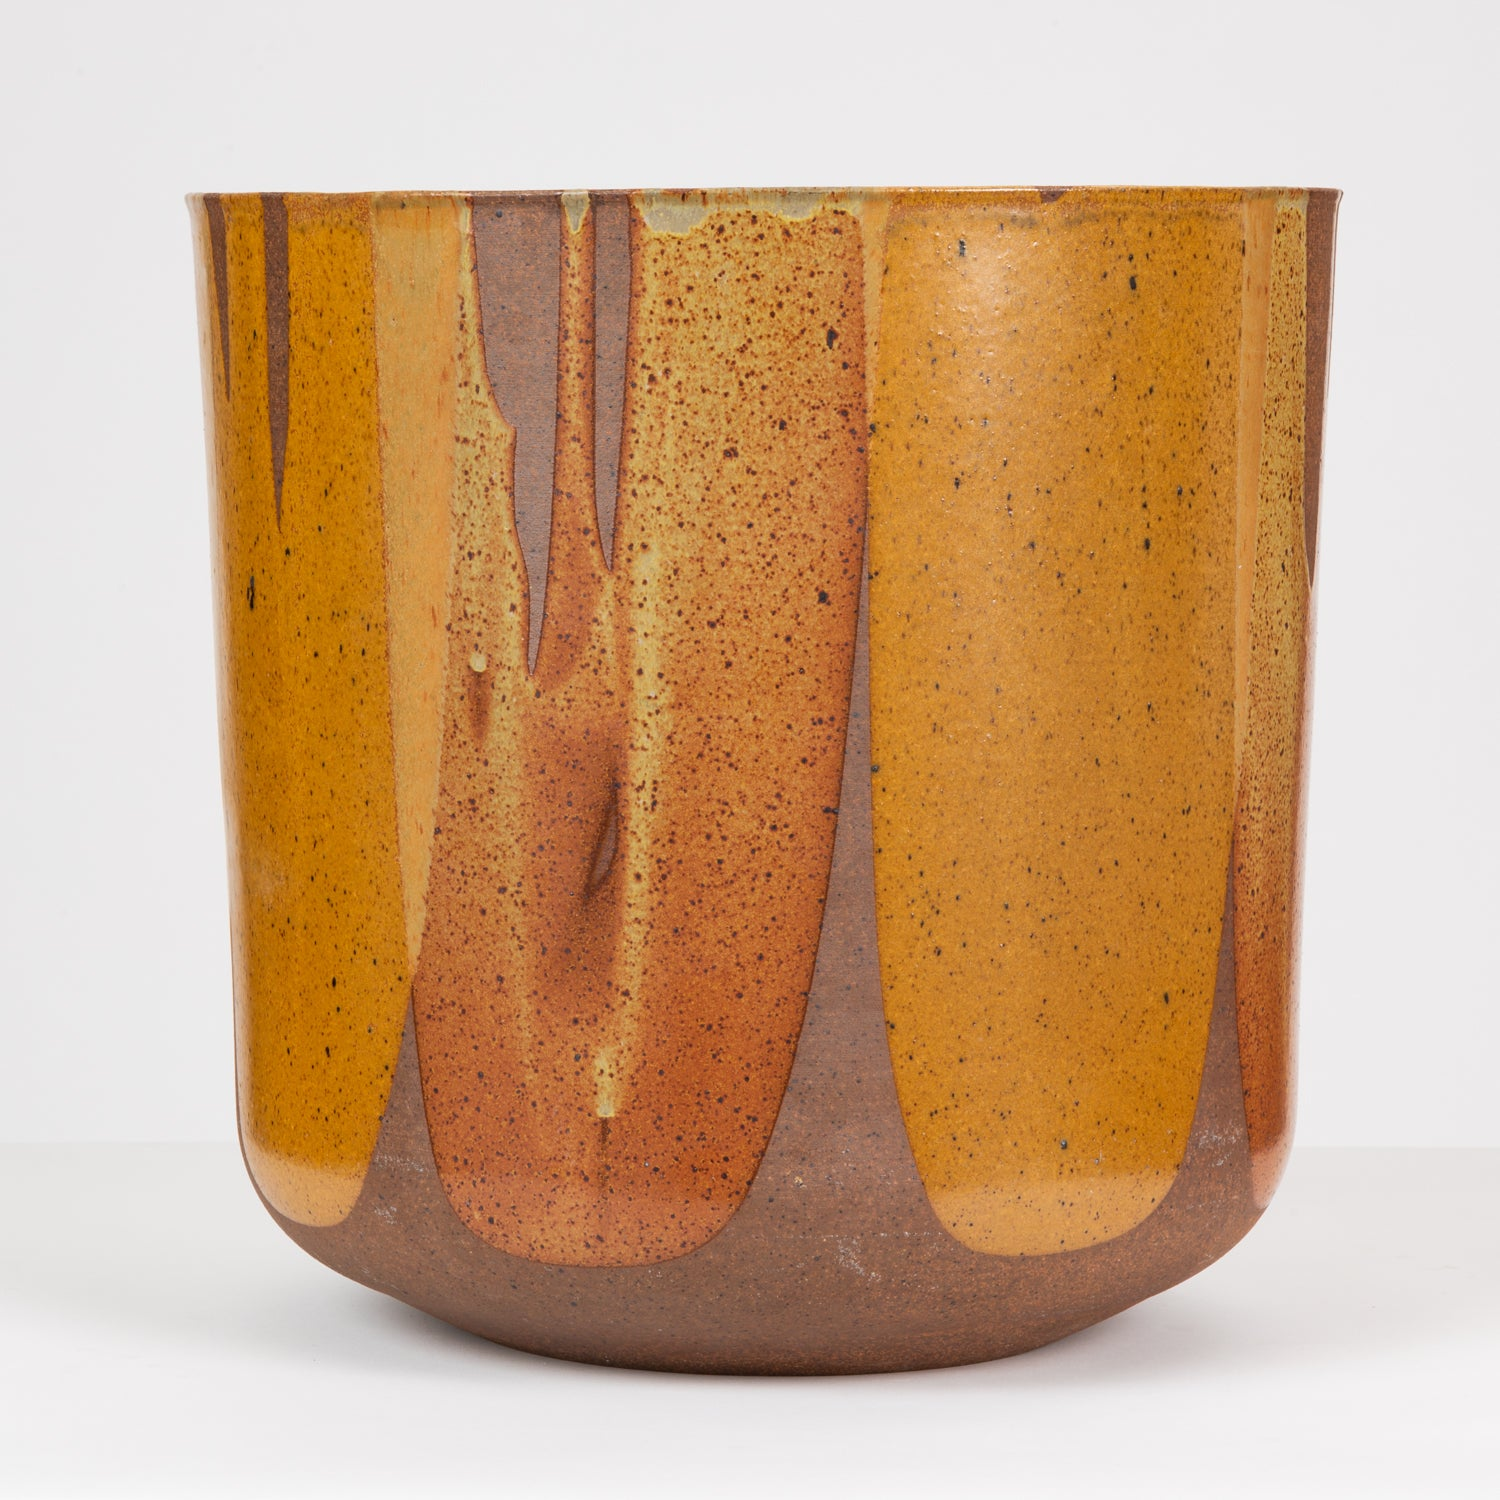 Malcolm Leland LT-24 Flame-Glazed Planter for Architectural Pottery